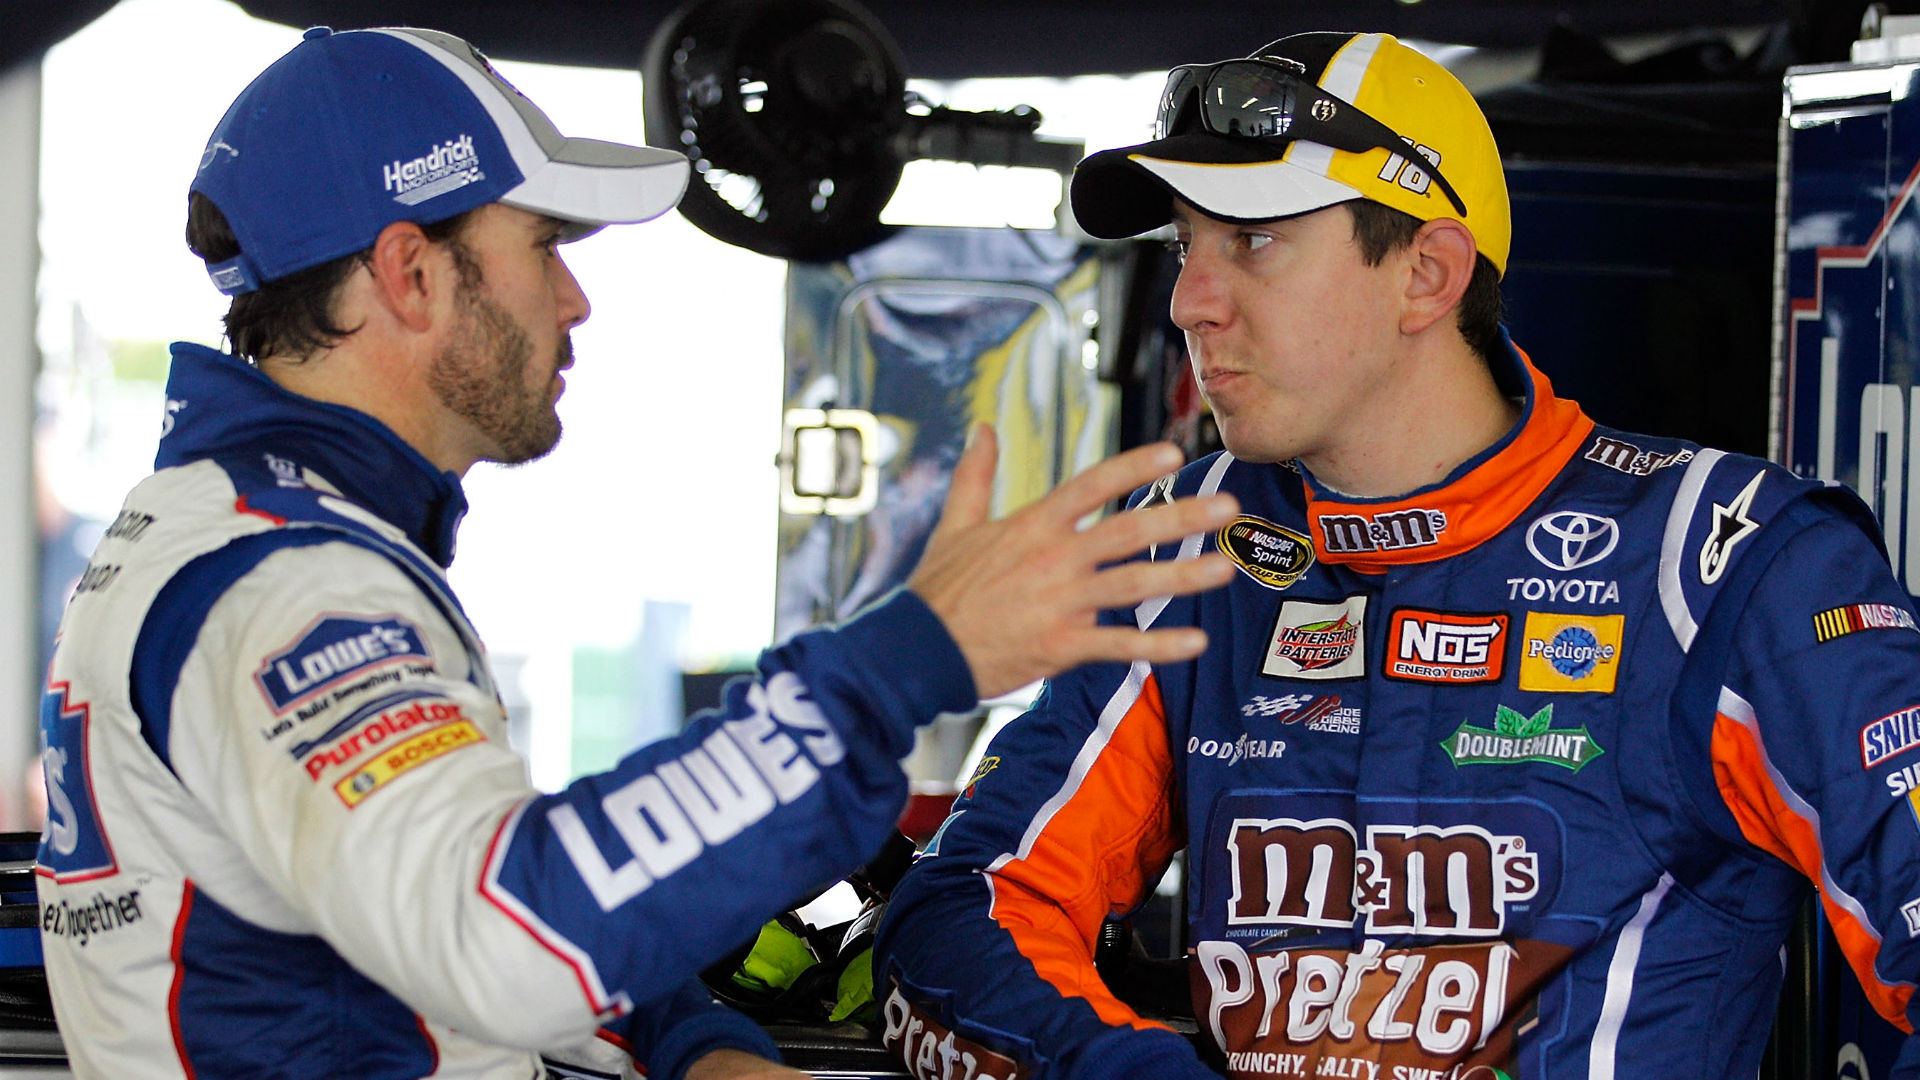 2017 NASCAR playoffs: Round of 12 standings, schedule after Talladega chaos